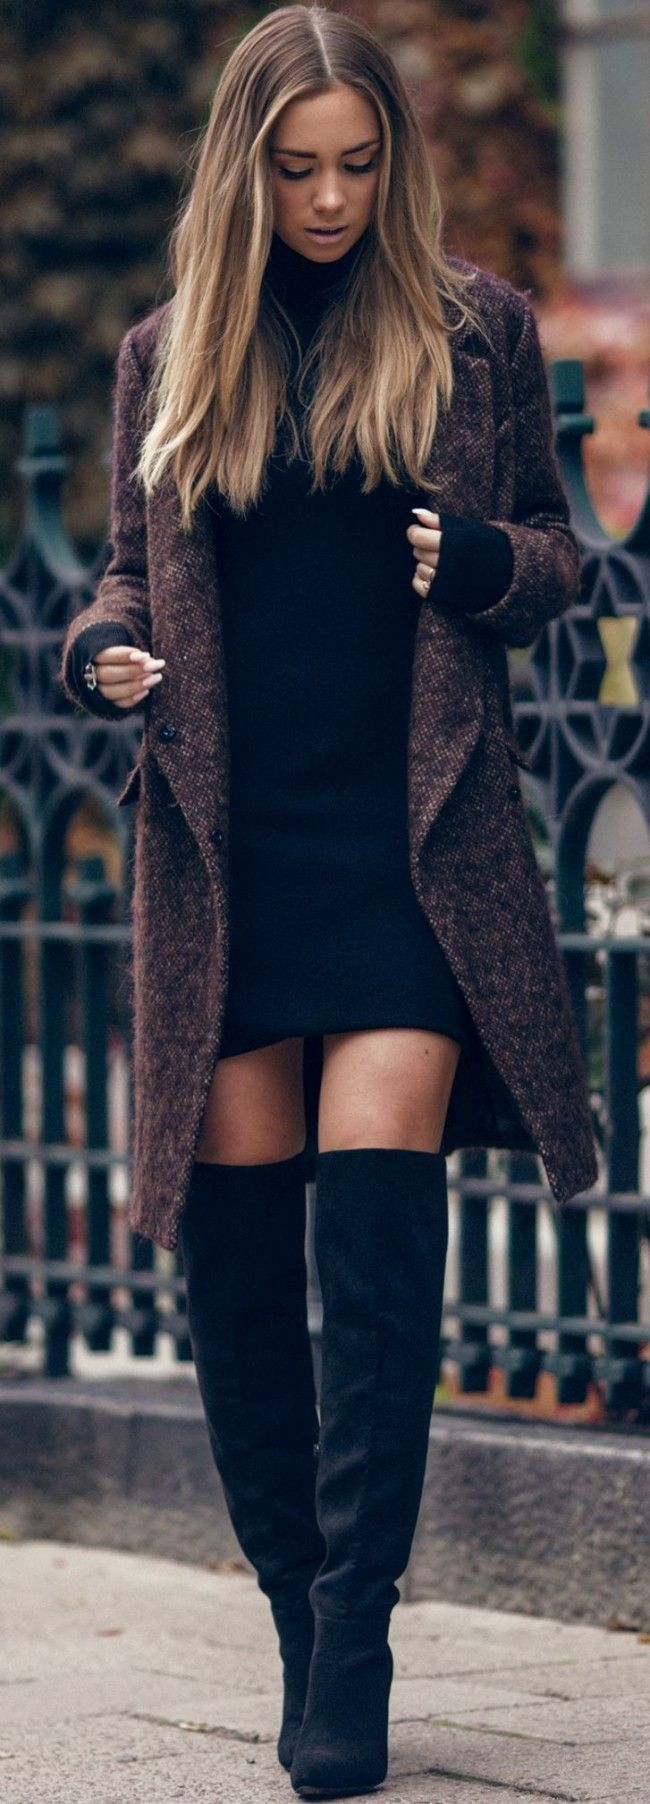 Overknees | Fashion trend